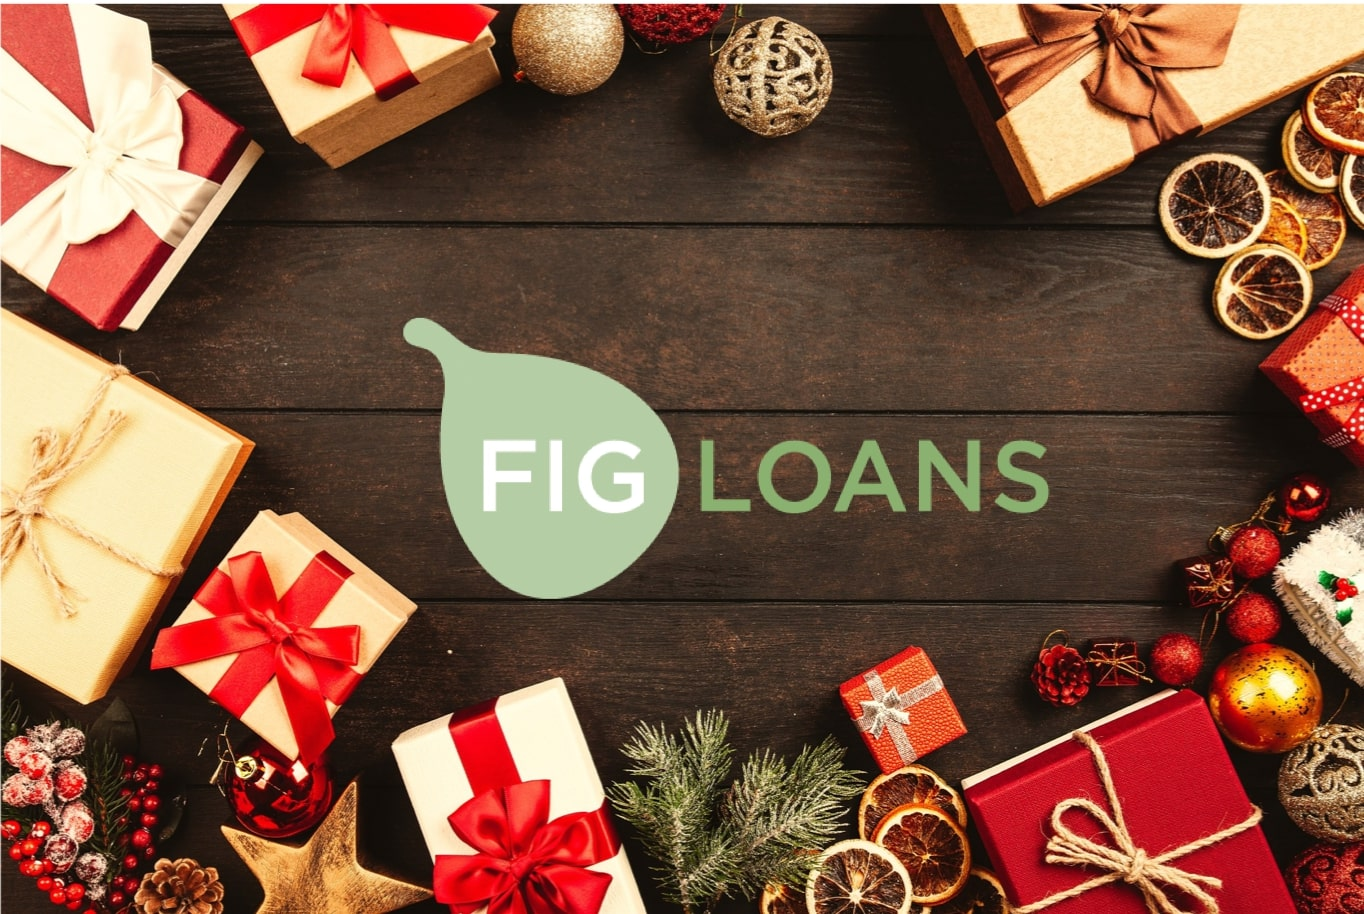 12 Awesome Christmas Giftts for $10 or less | Fig Loans